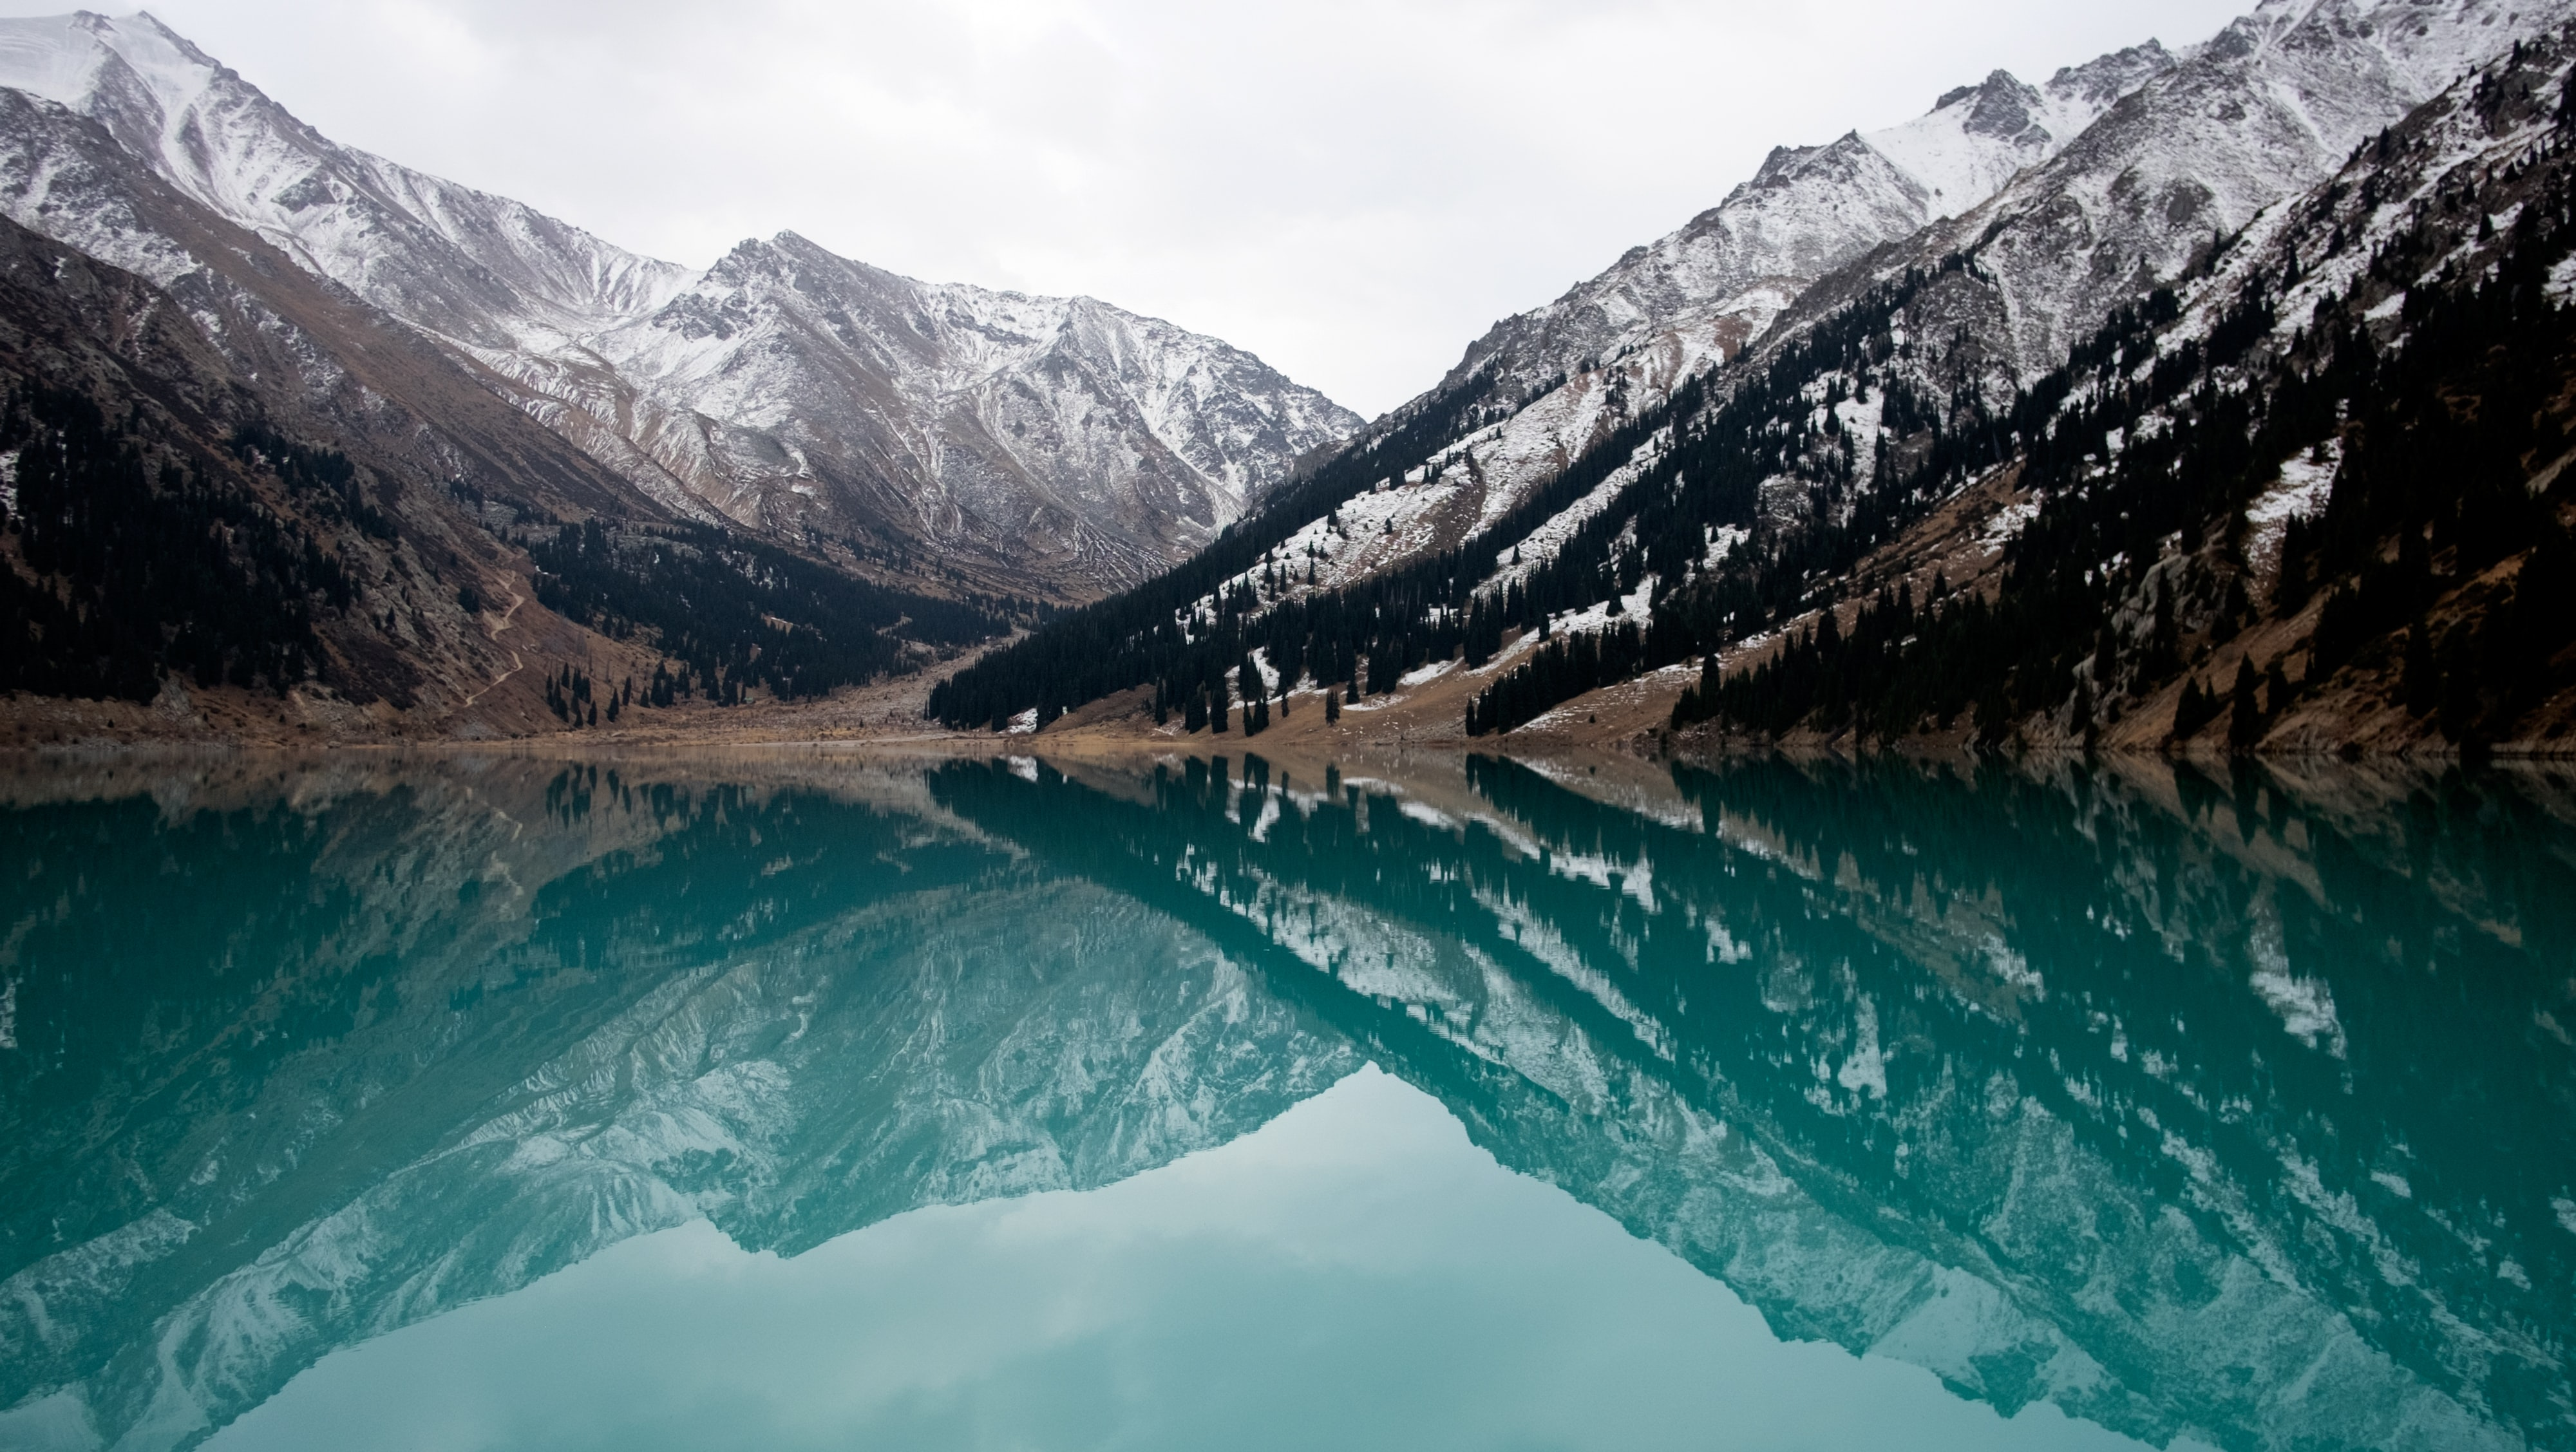 lake surrounded with mountains during daytime